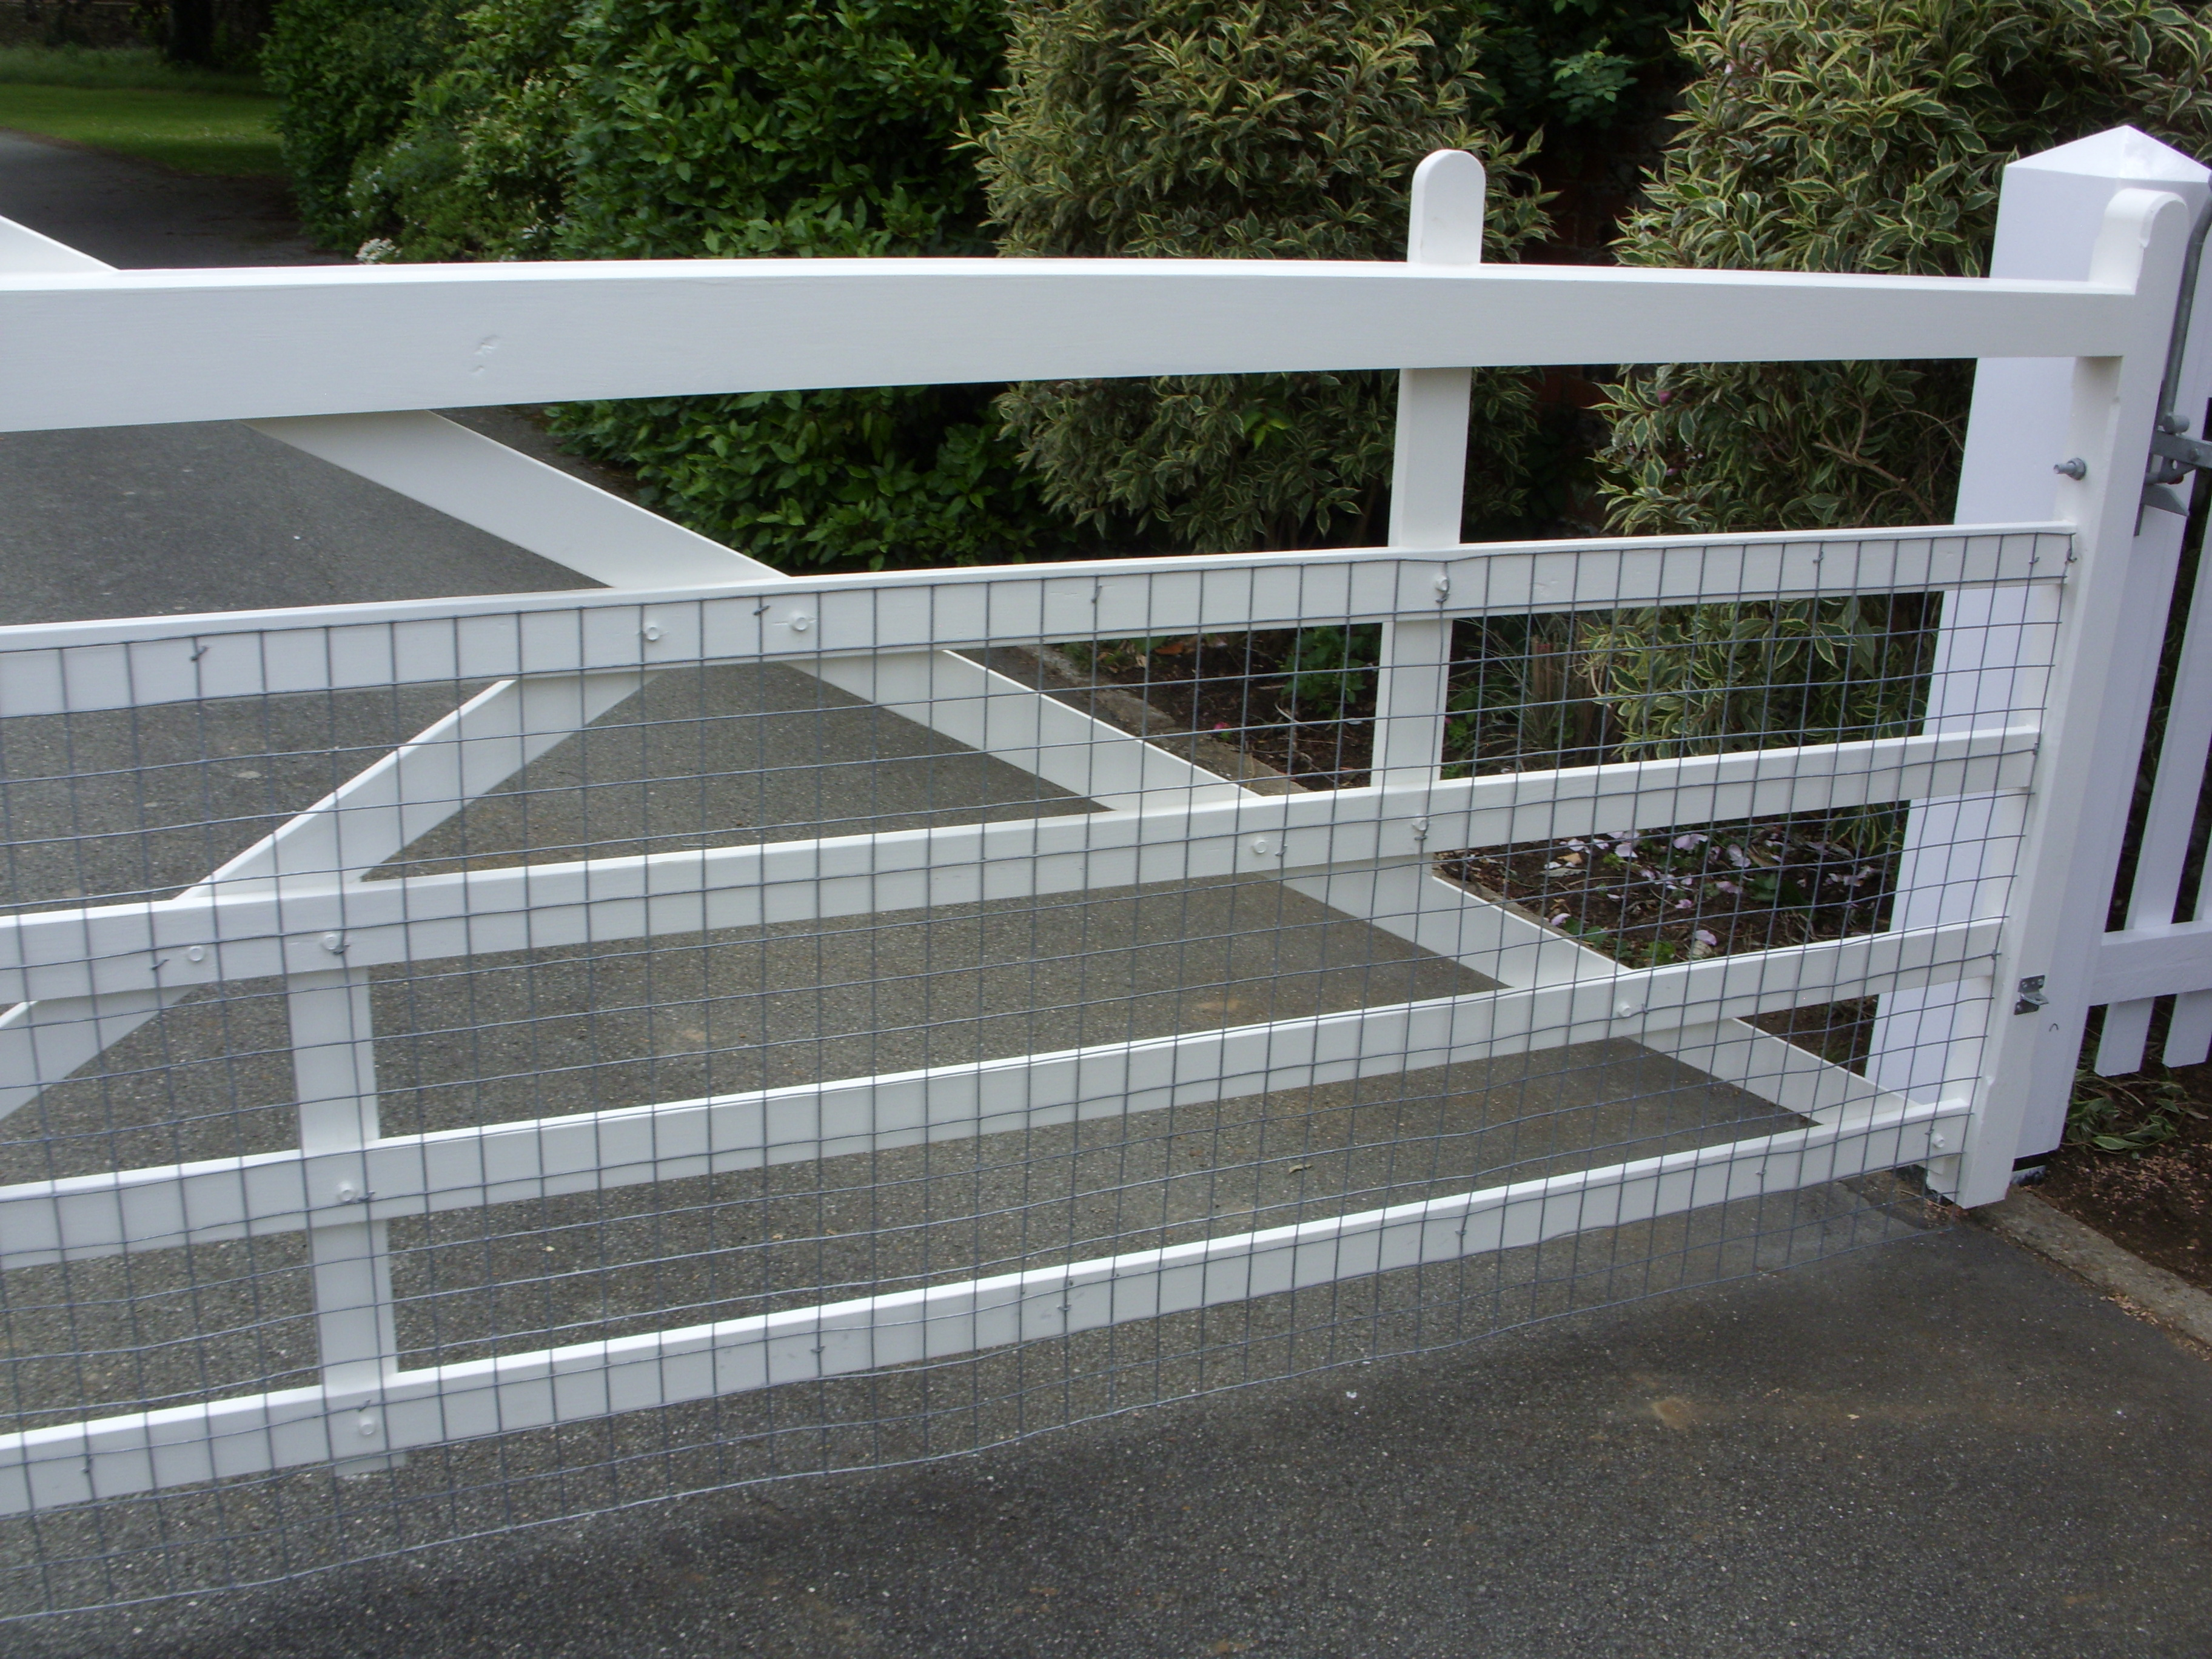 Mesh fitted to a 5 bar gate